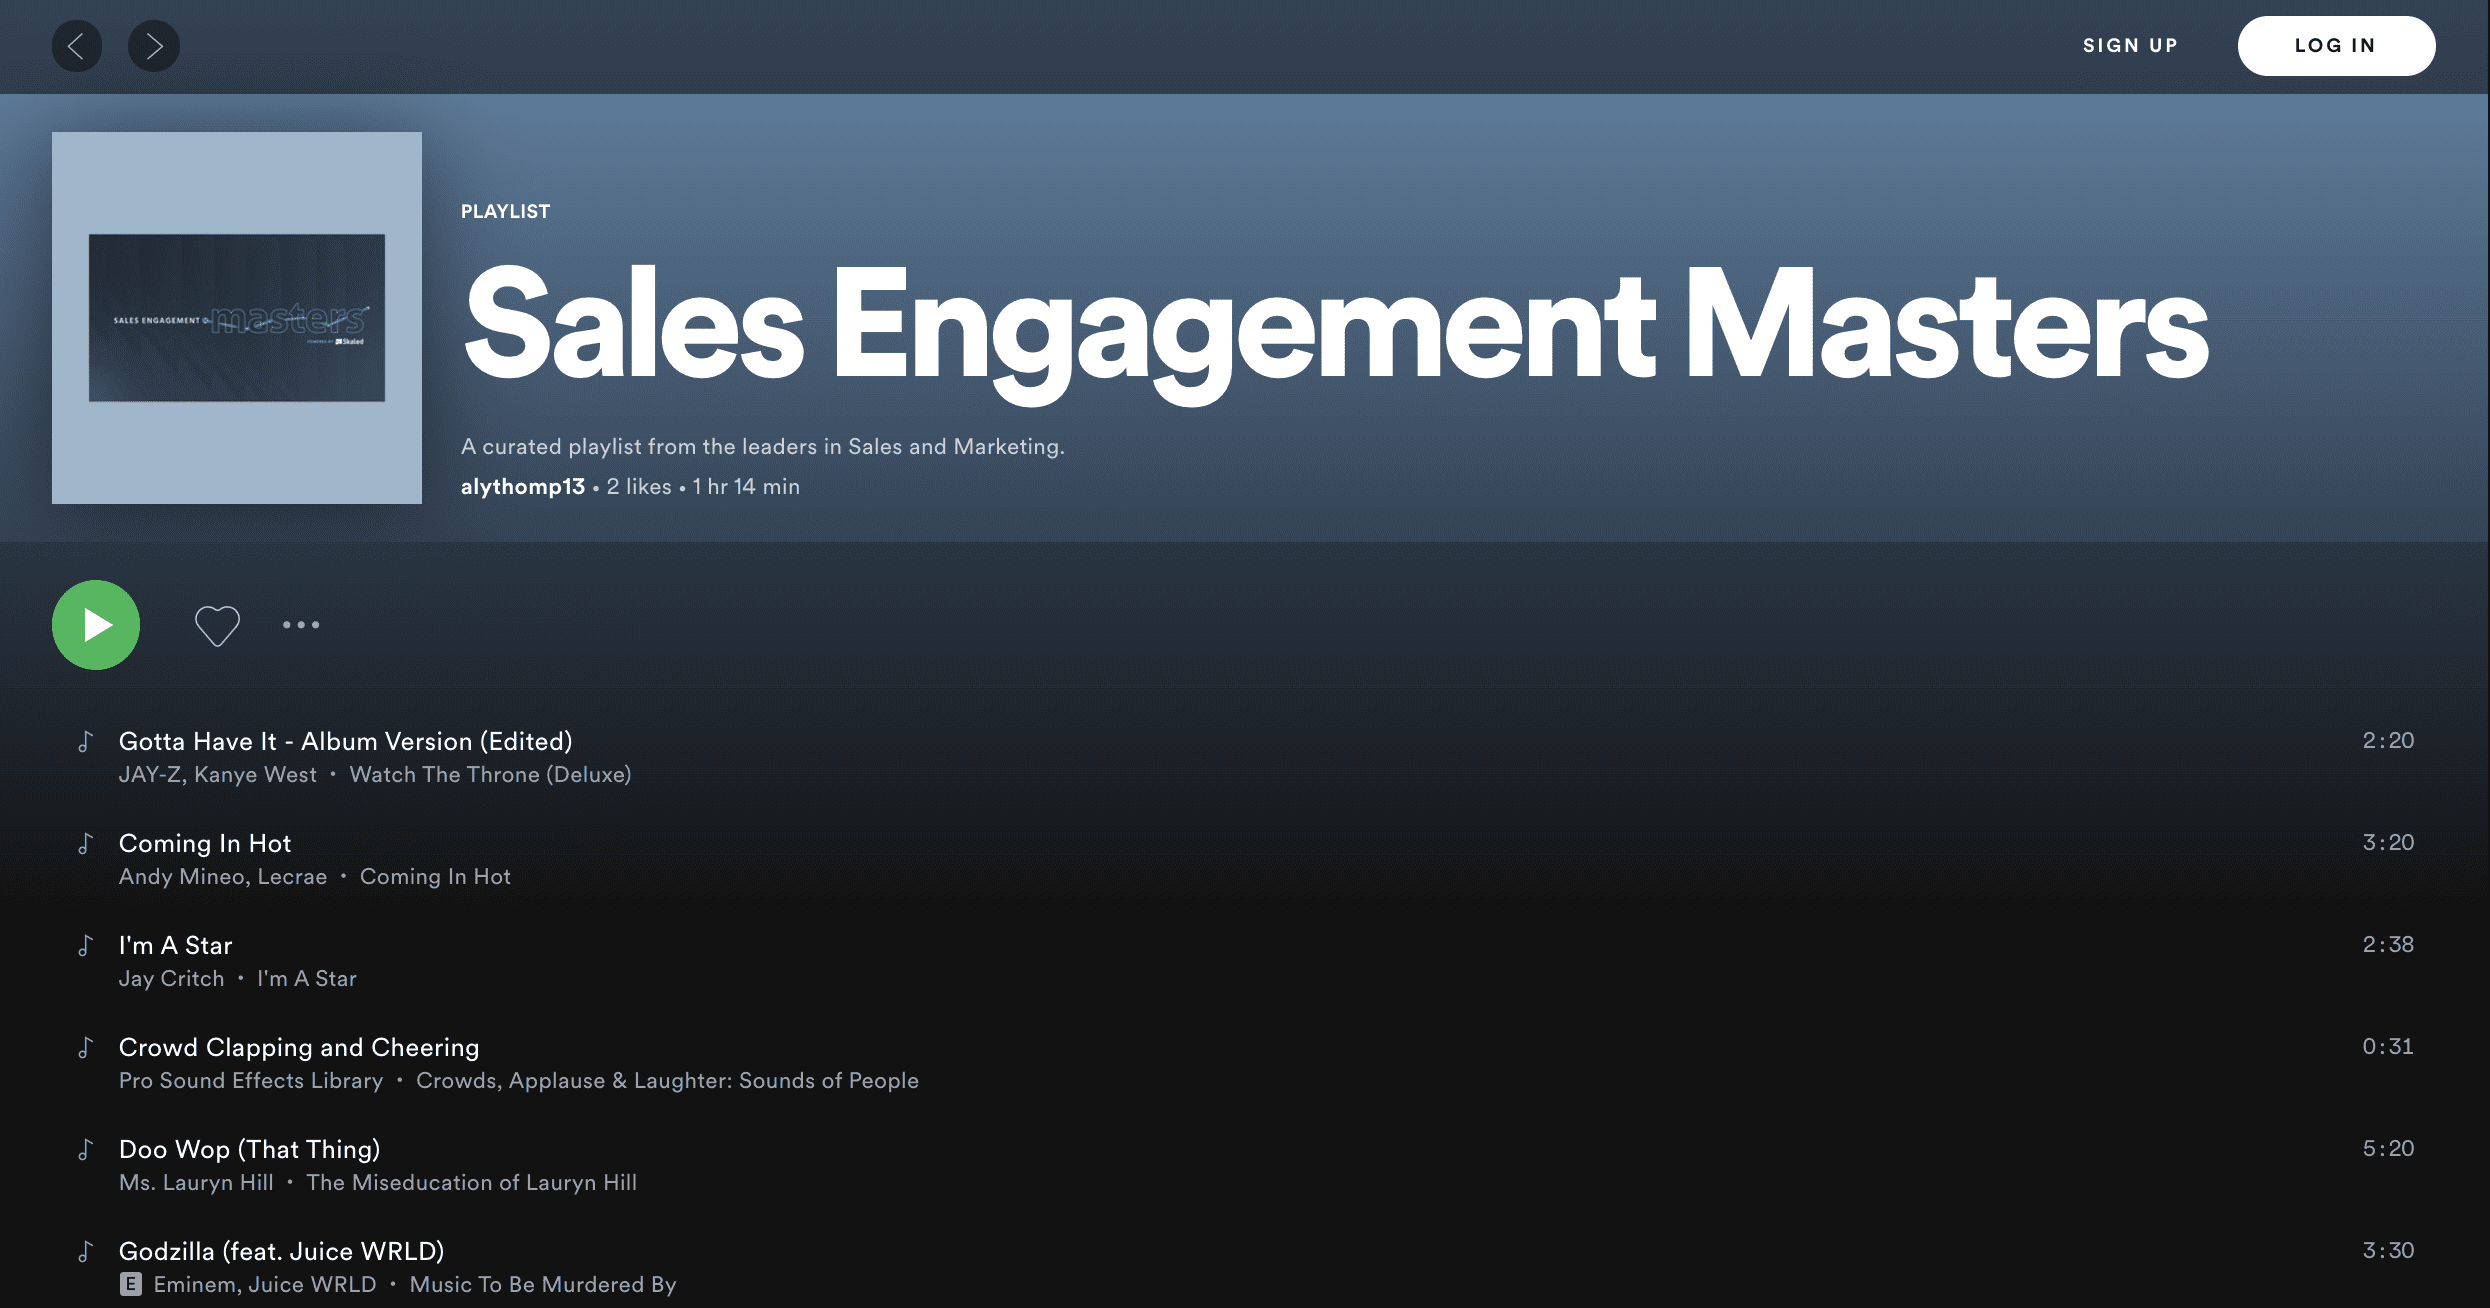 sales engagement masters Spotify playlist